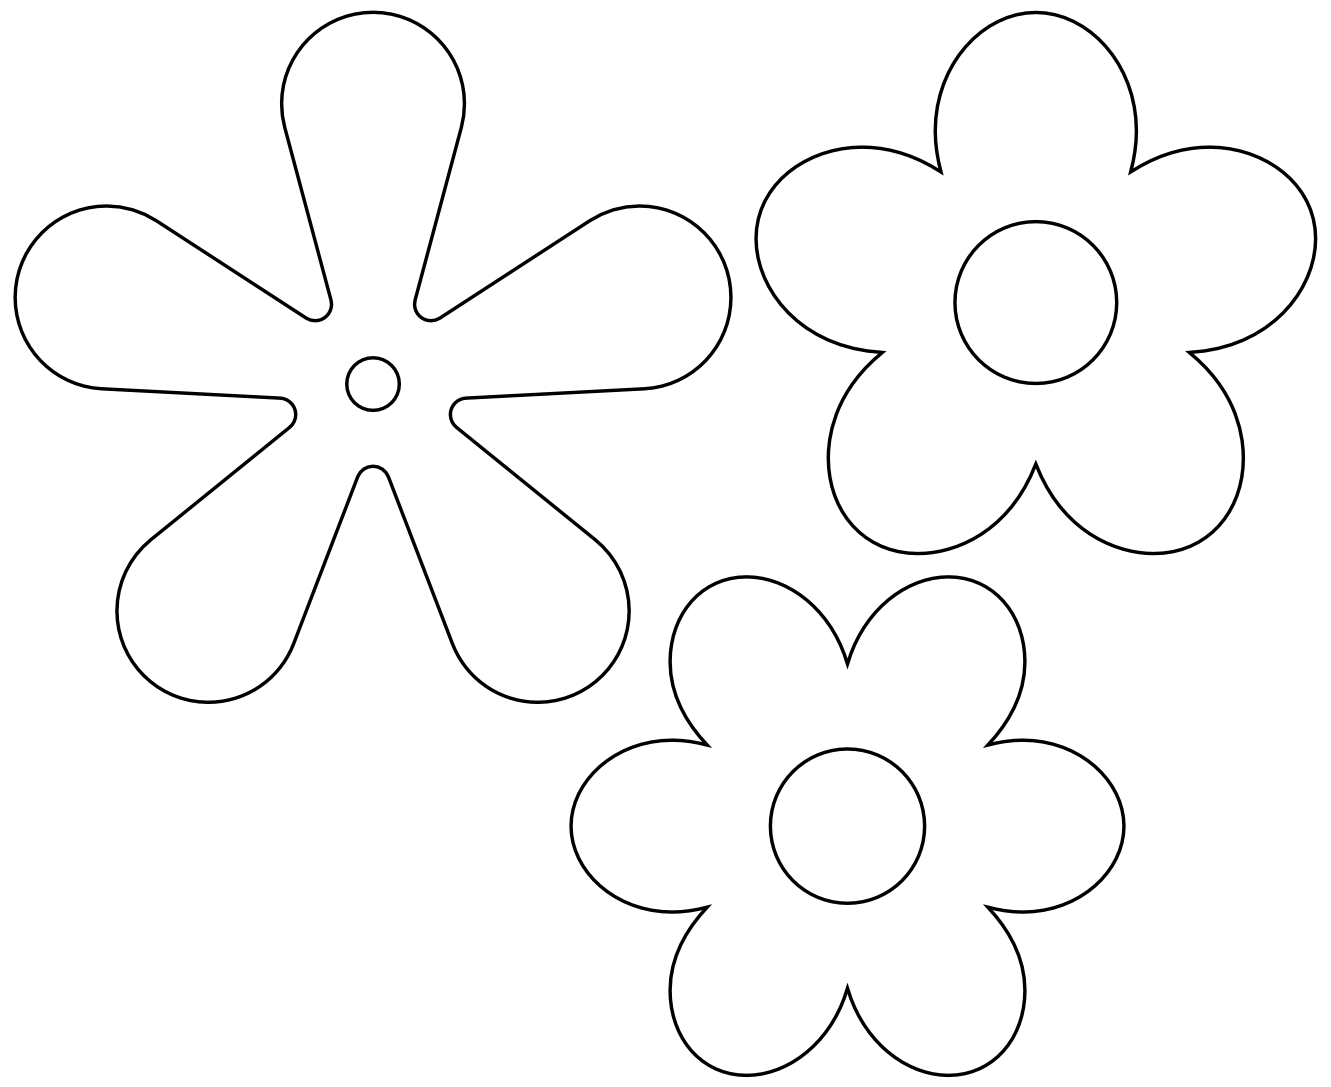 Retro flower clipart picture transparent download Flower Black And White Transparent PNG Pictures - Free Icons and PNG ... picture transparent download